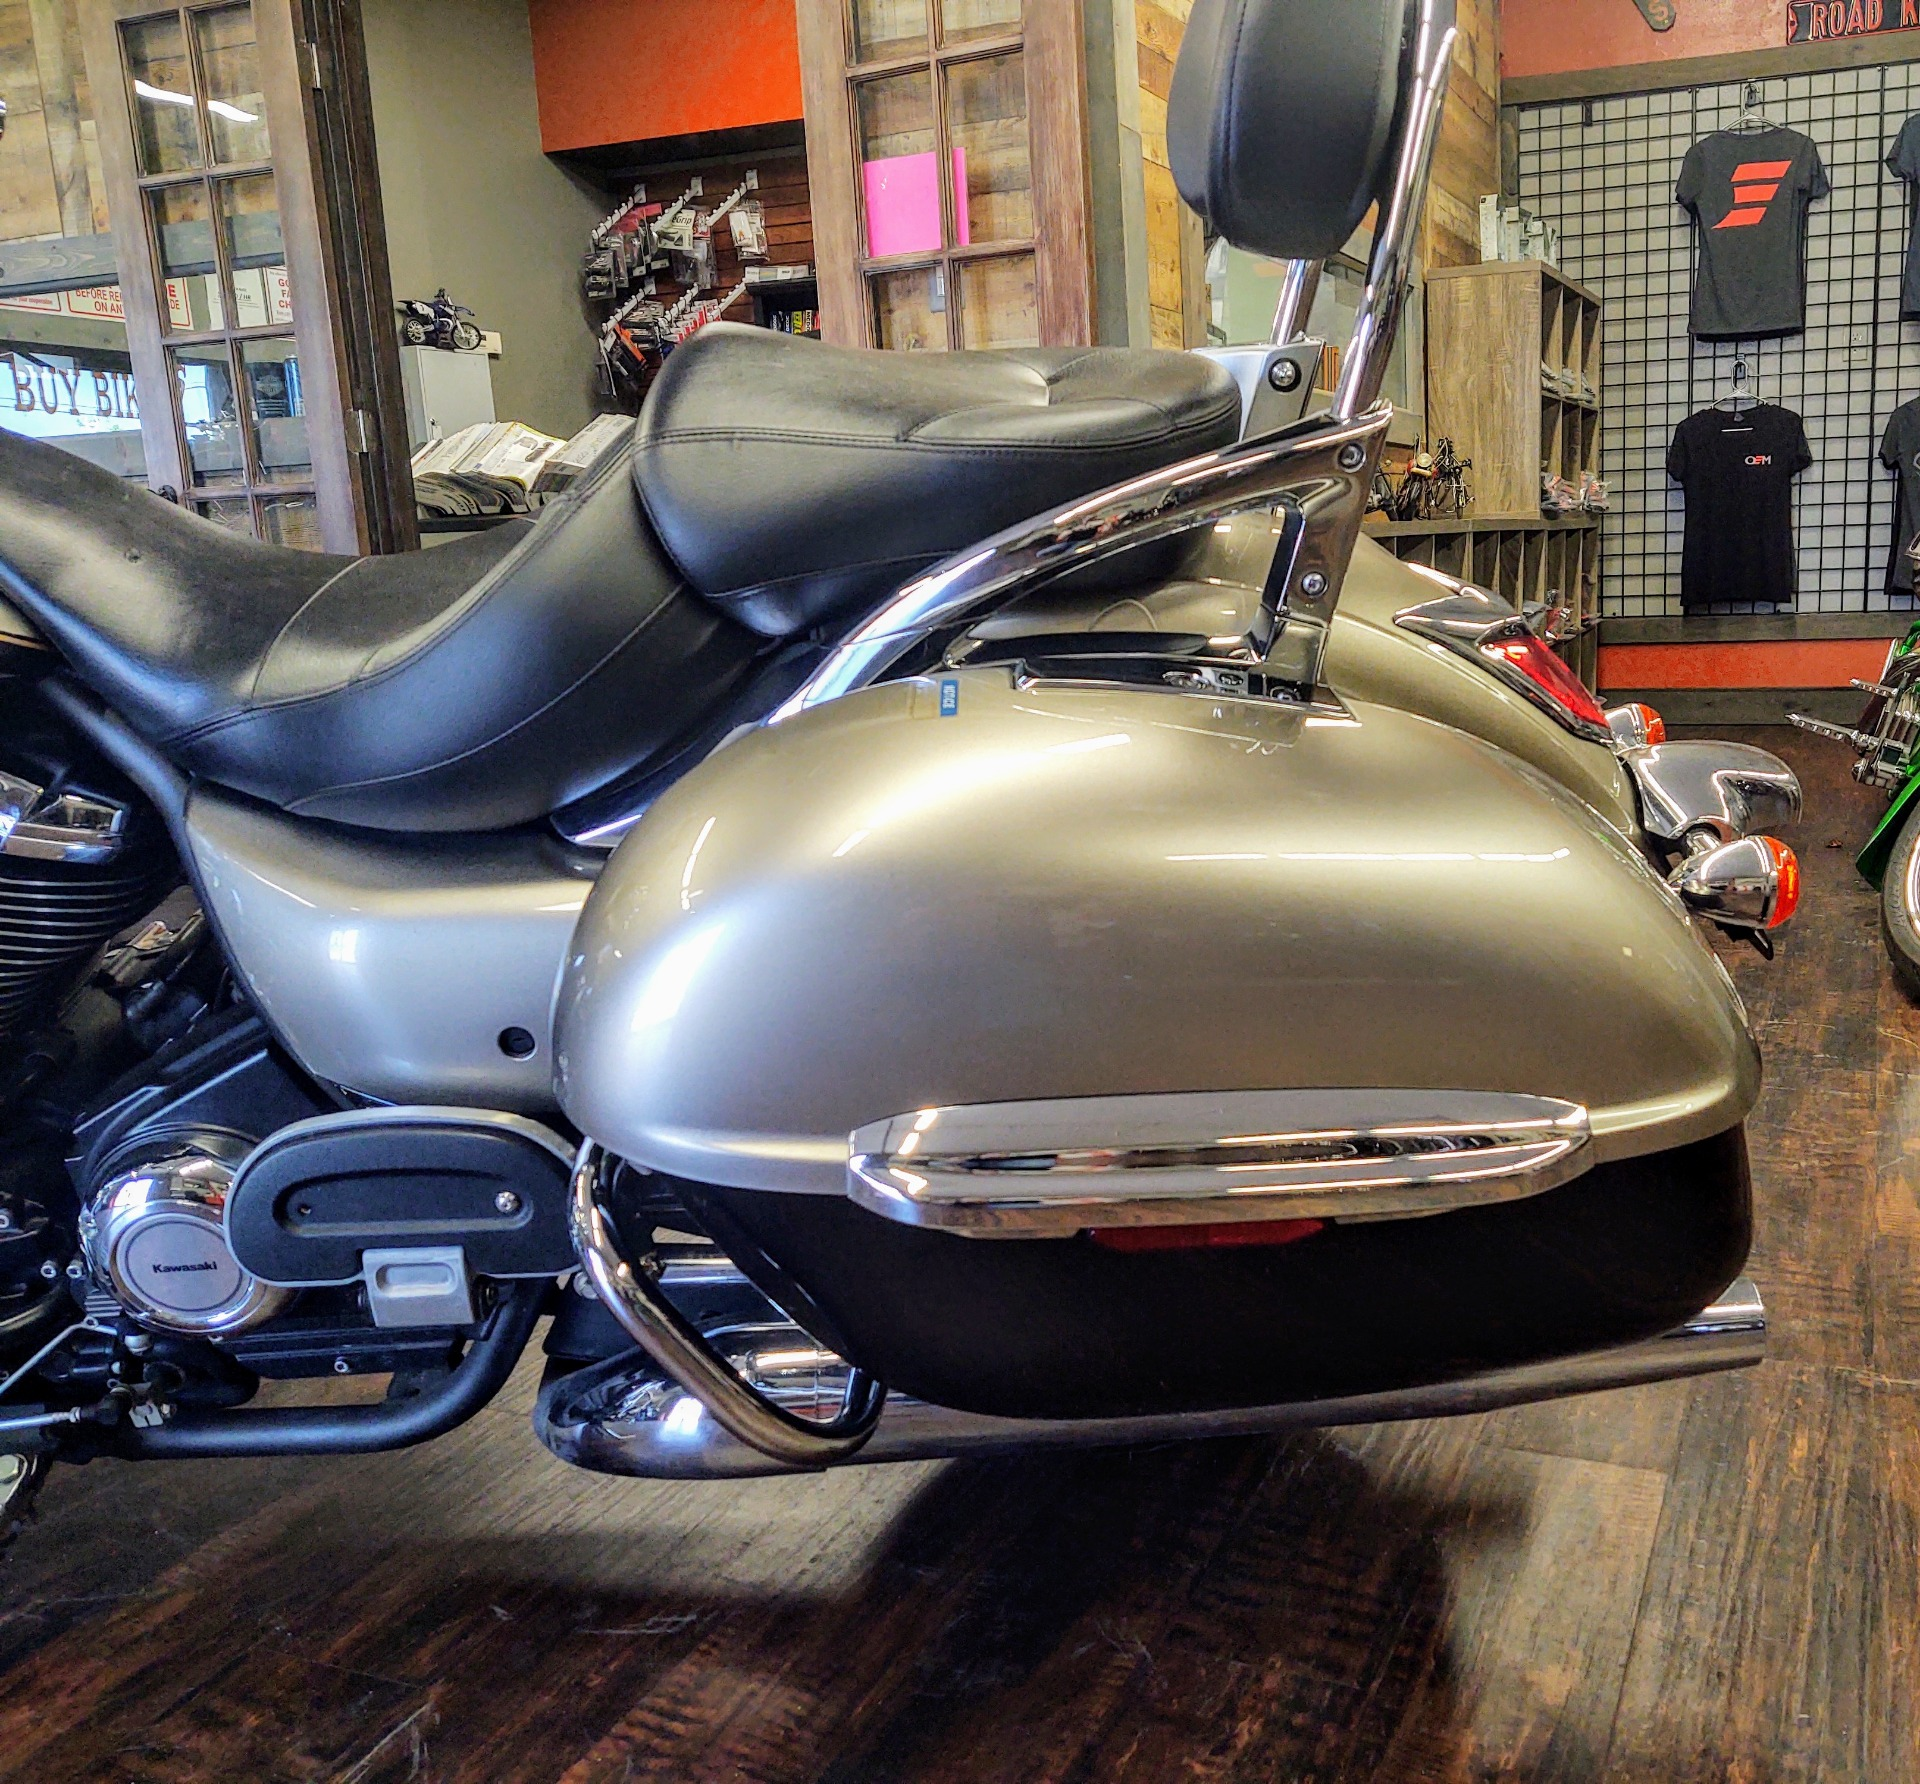 2013 Kawasaki Vulcan® 1700 Nomad™ in Pensacola, Florida - Photo 9